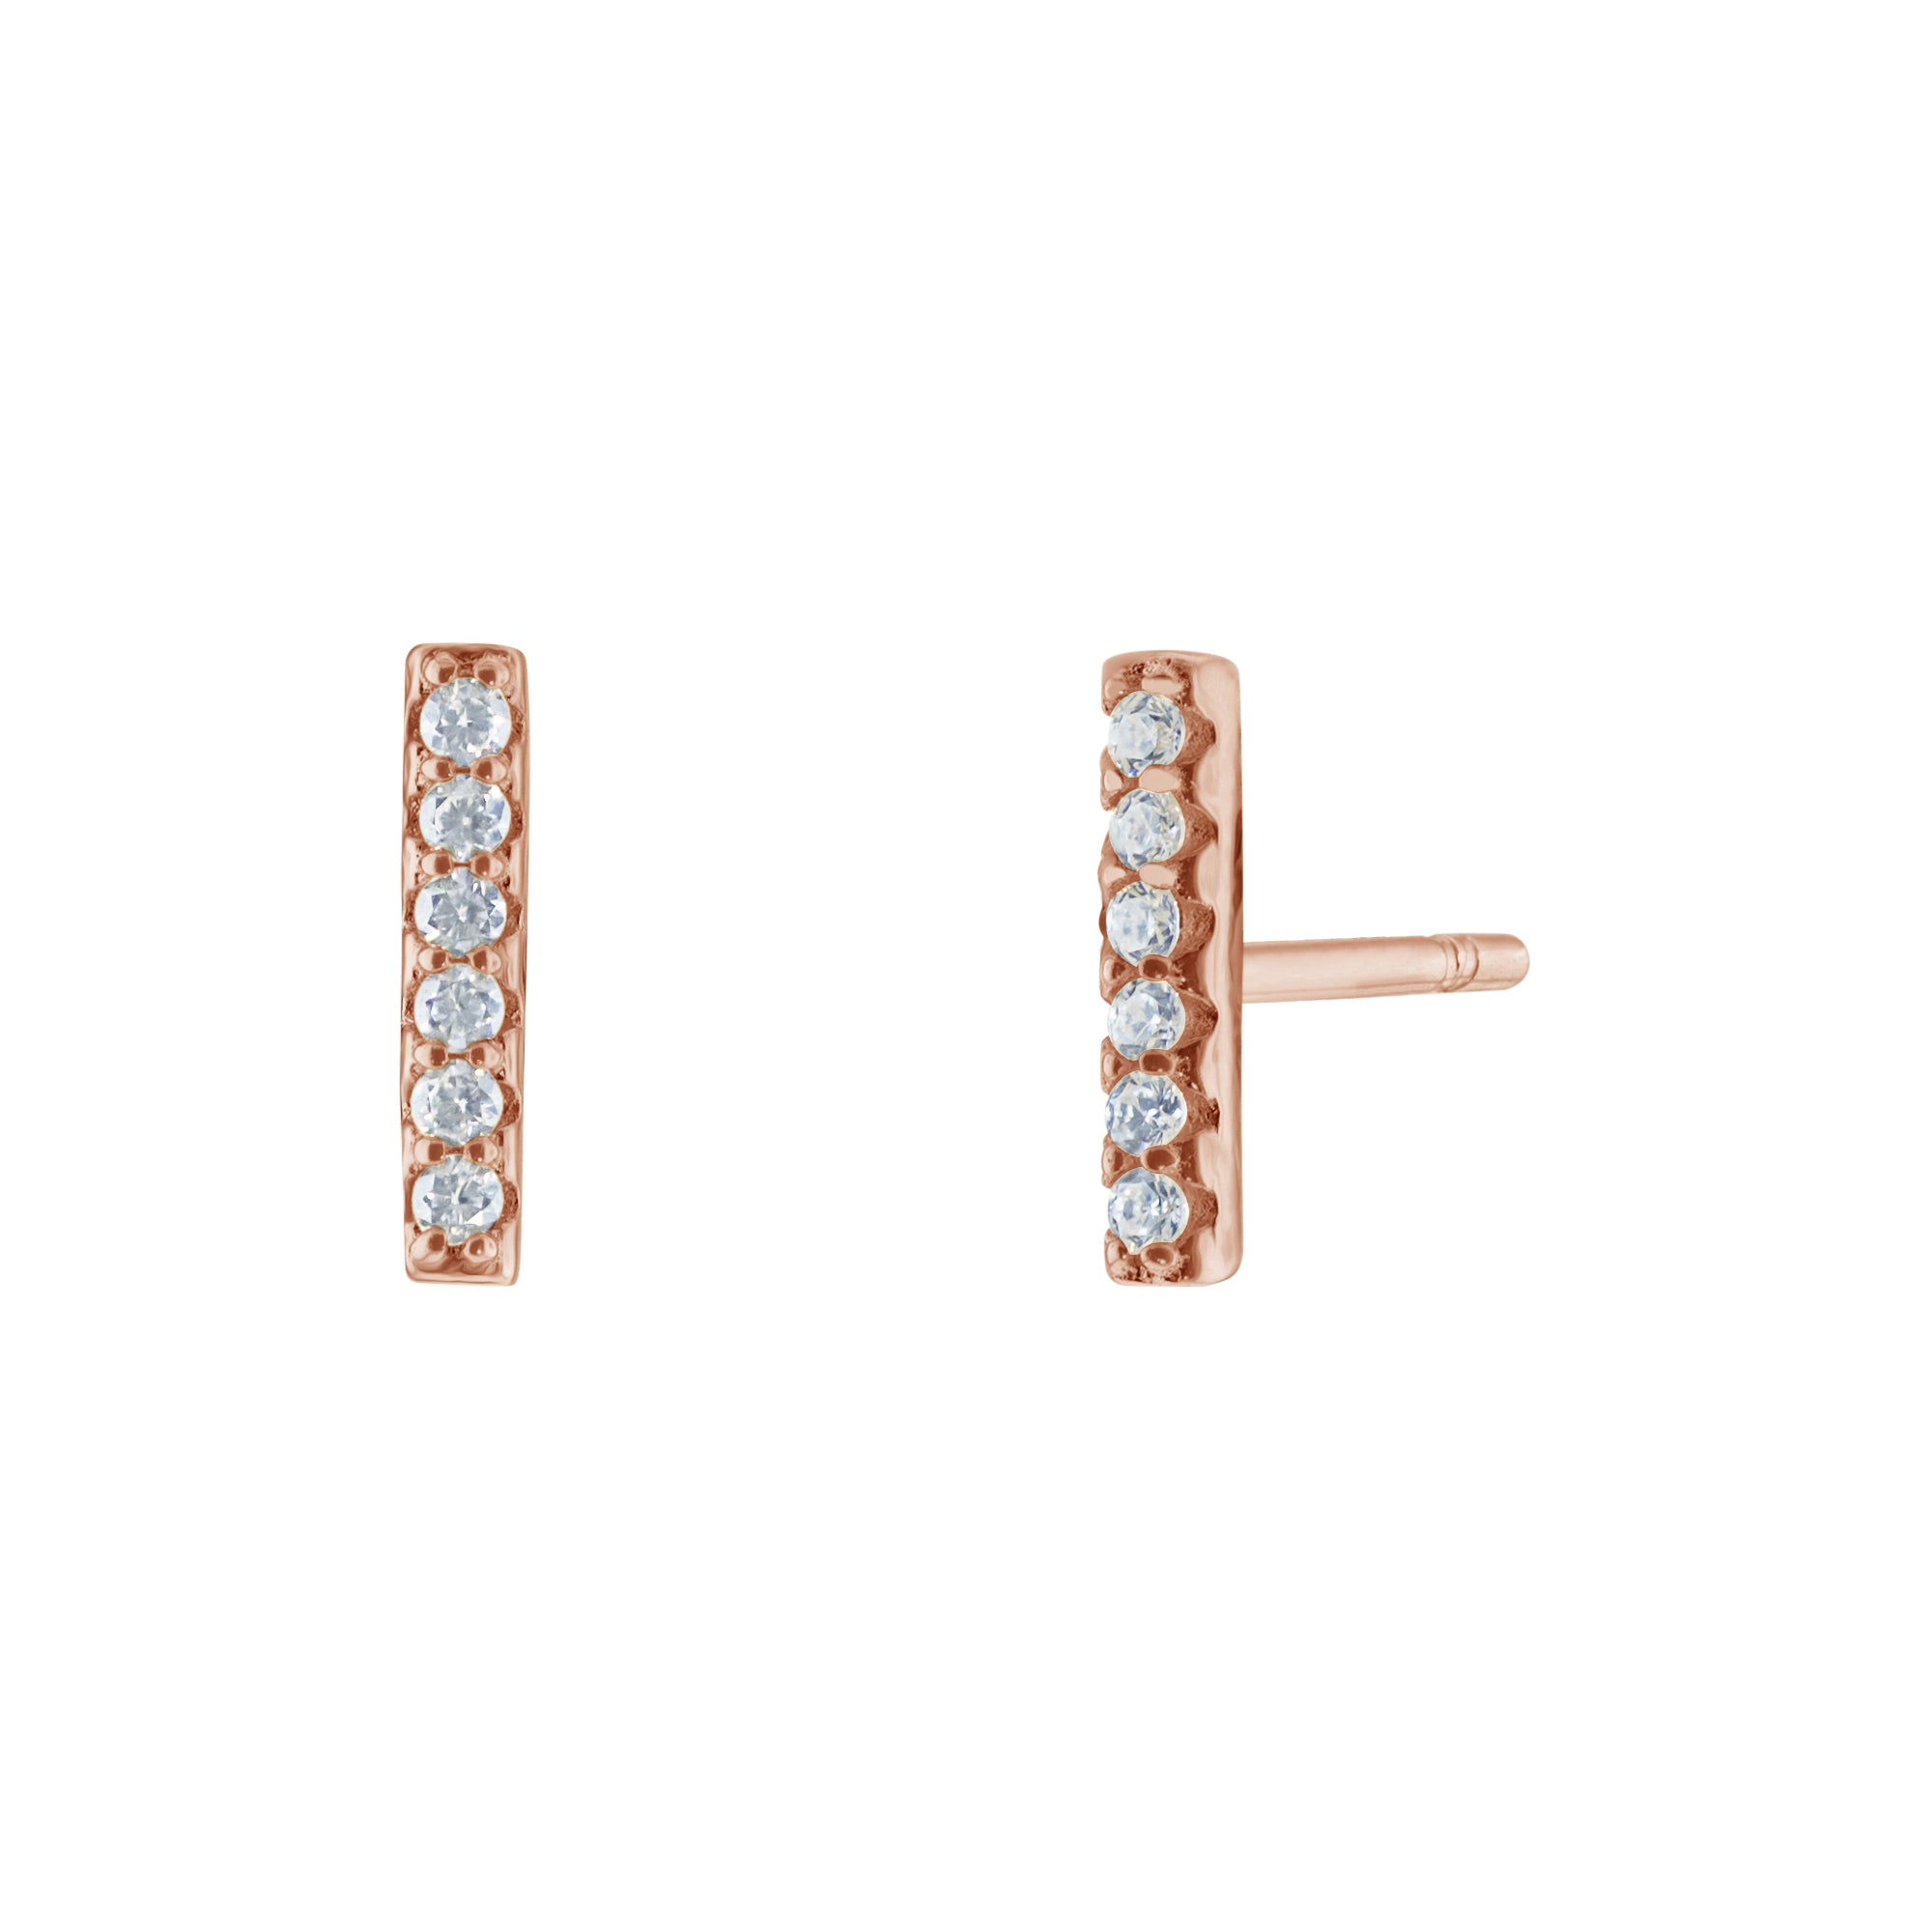 ca4d53396 Bar Pave Earrings - Rose Gold - Voare Jewelry ...